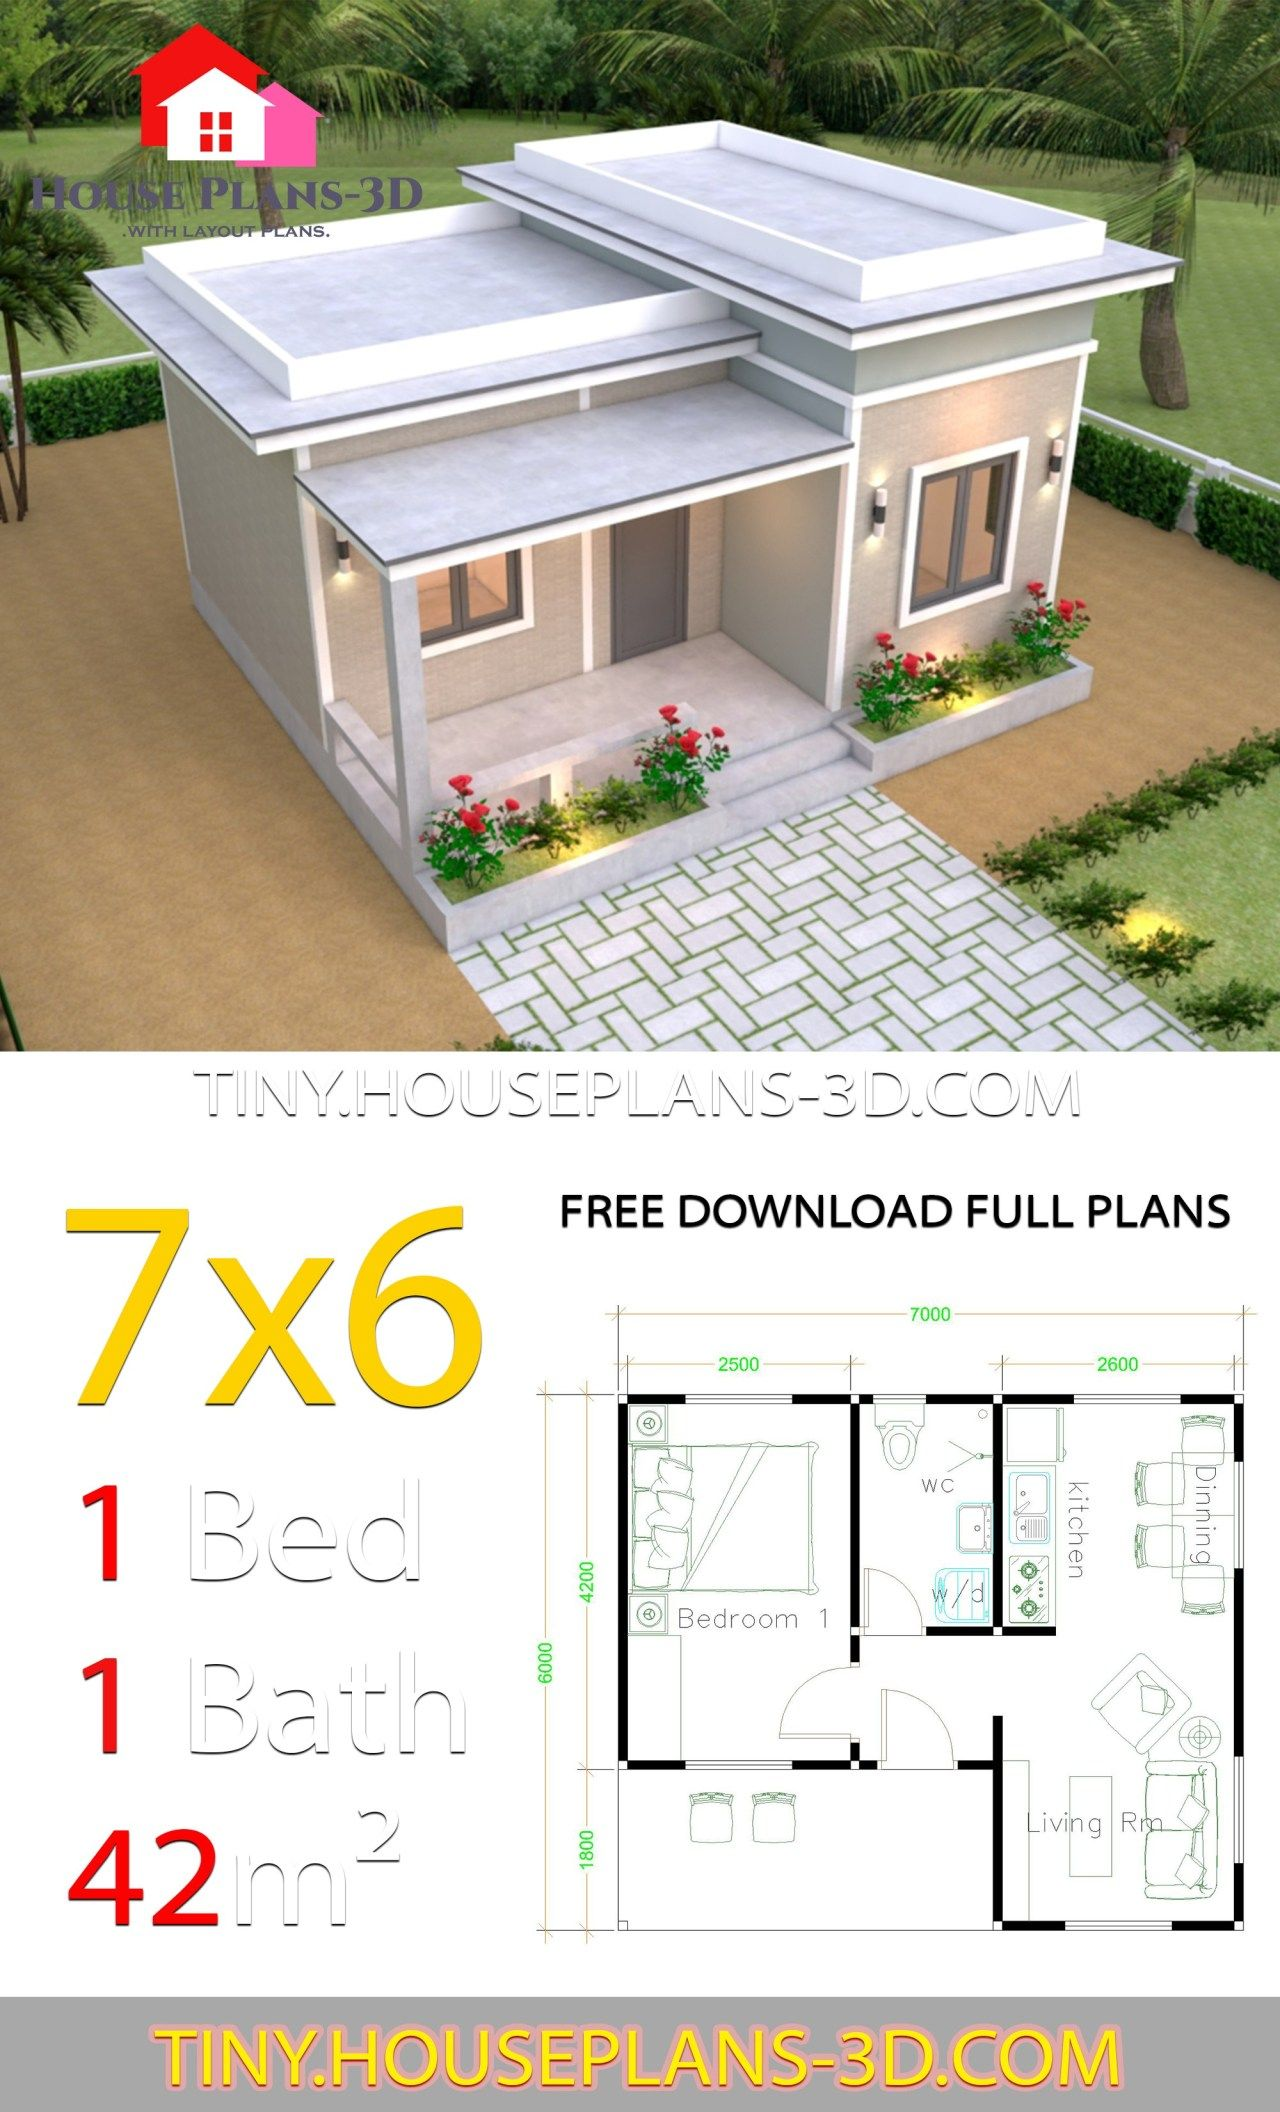 Tiny House Plans 7x6 With One Bedroom Flat Roof Tiny House Plans Flat Roof House Tiny House Layout One Bedroom House